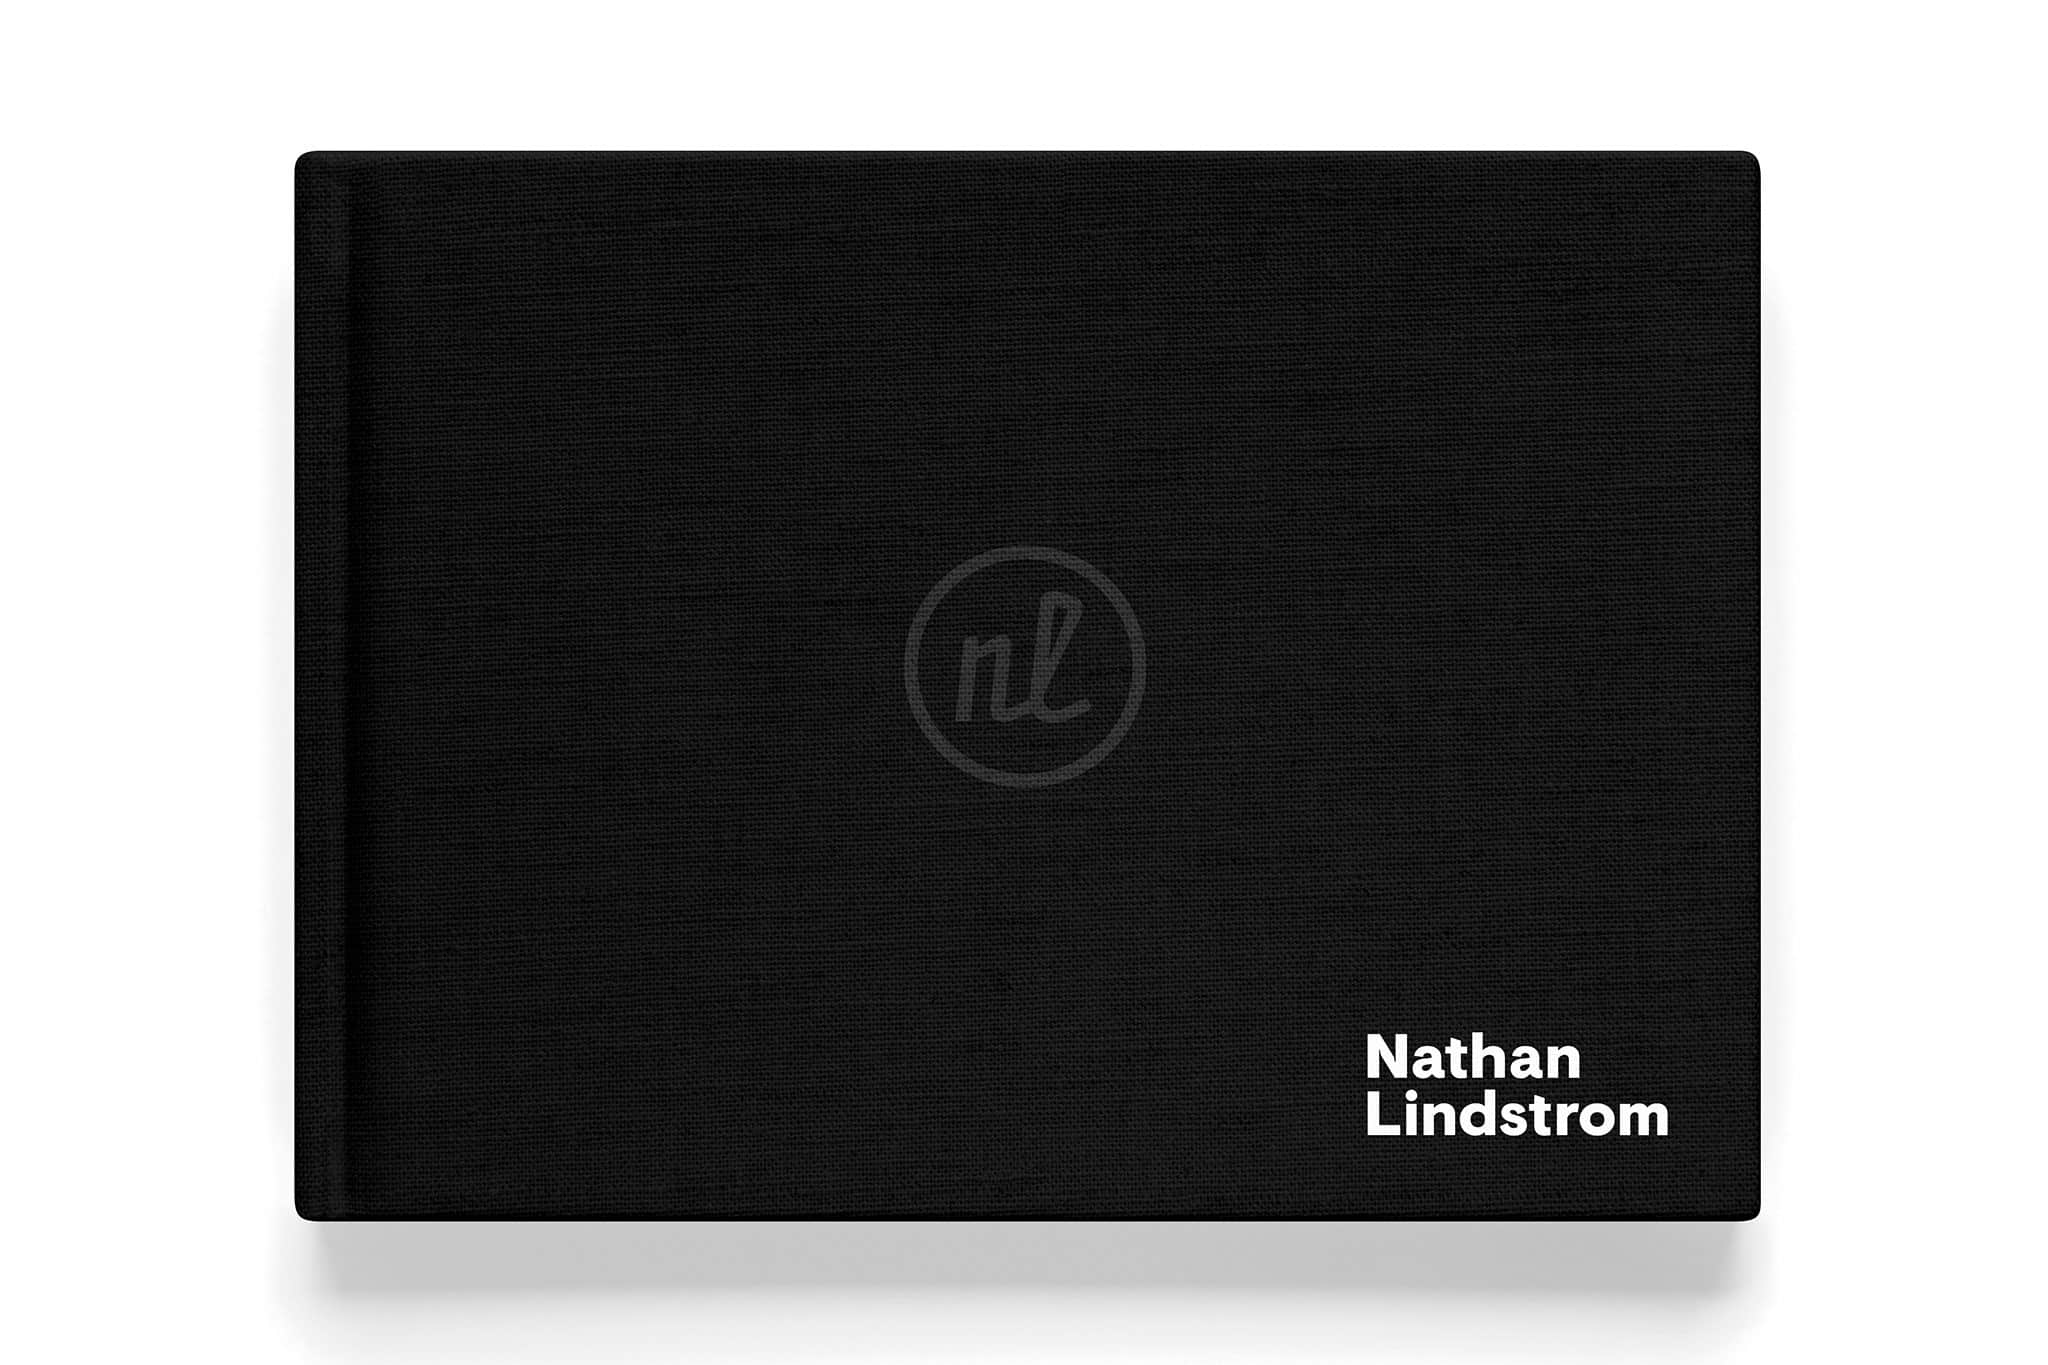 Portfolio cover for Nathan Lindstrom Photography | Designed by Field of Study: A branding and graphic design consultancy | Houston TX | Jennifer Blanco & John Earles